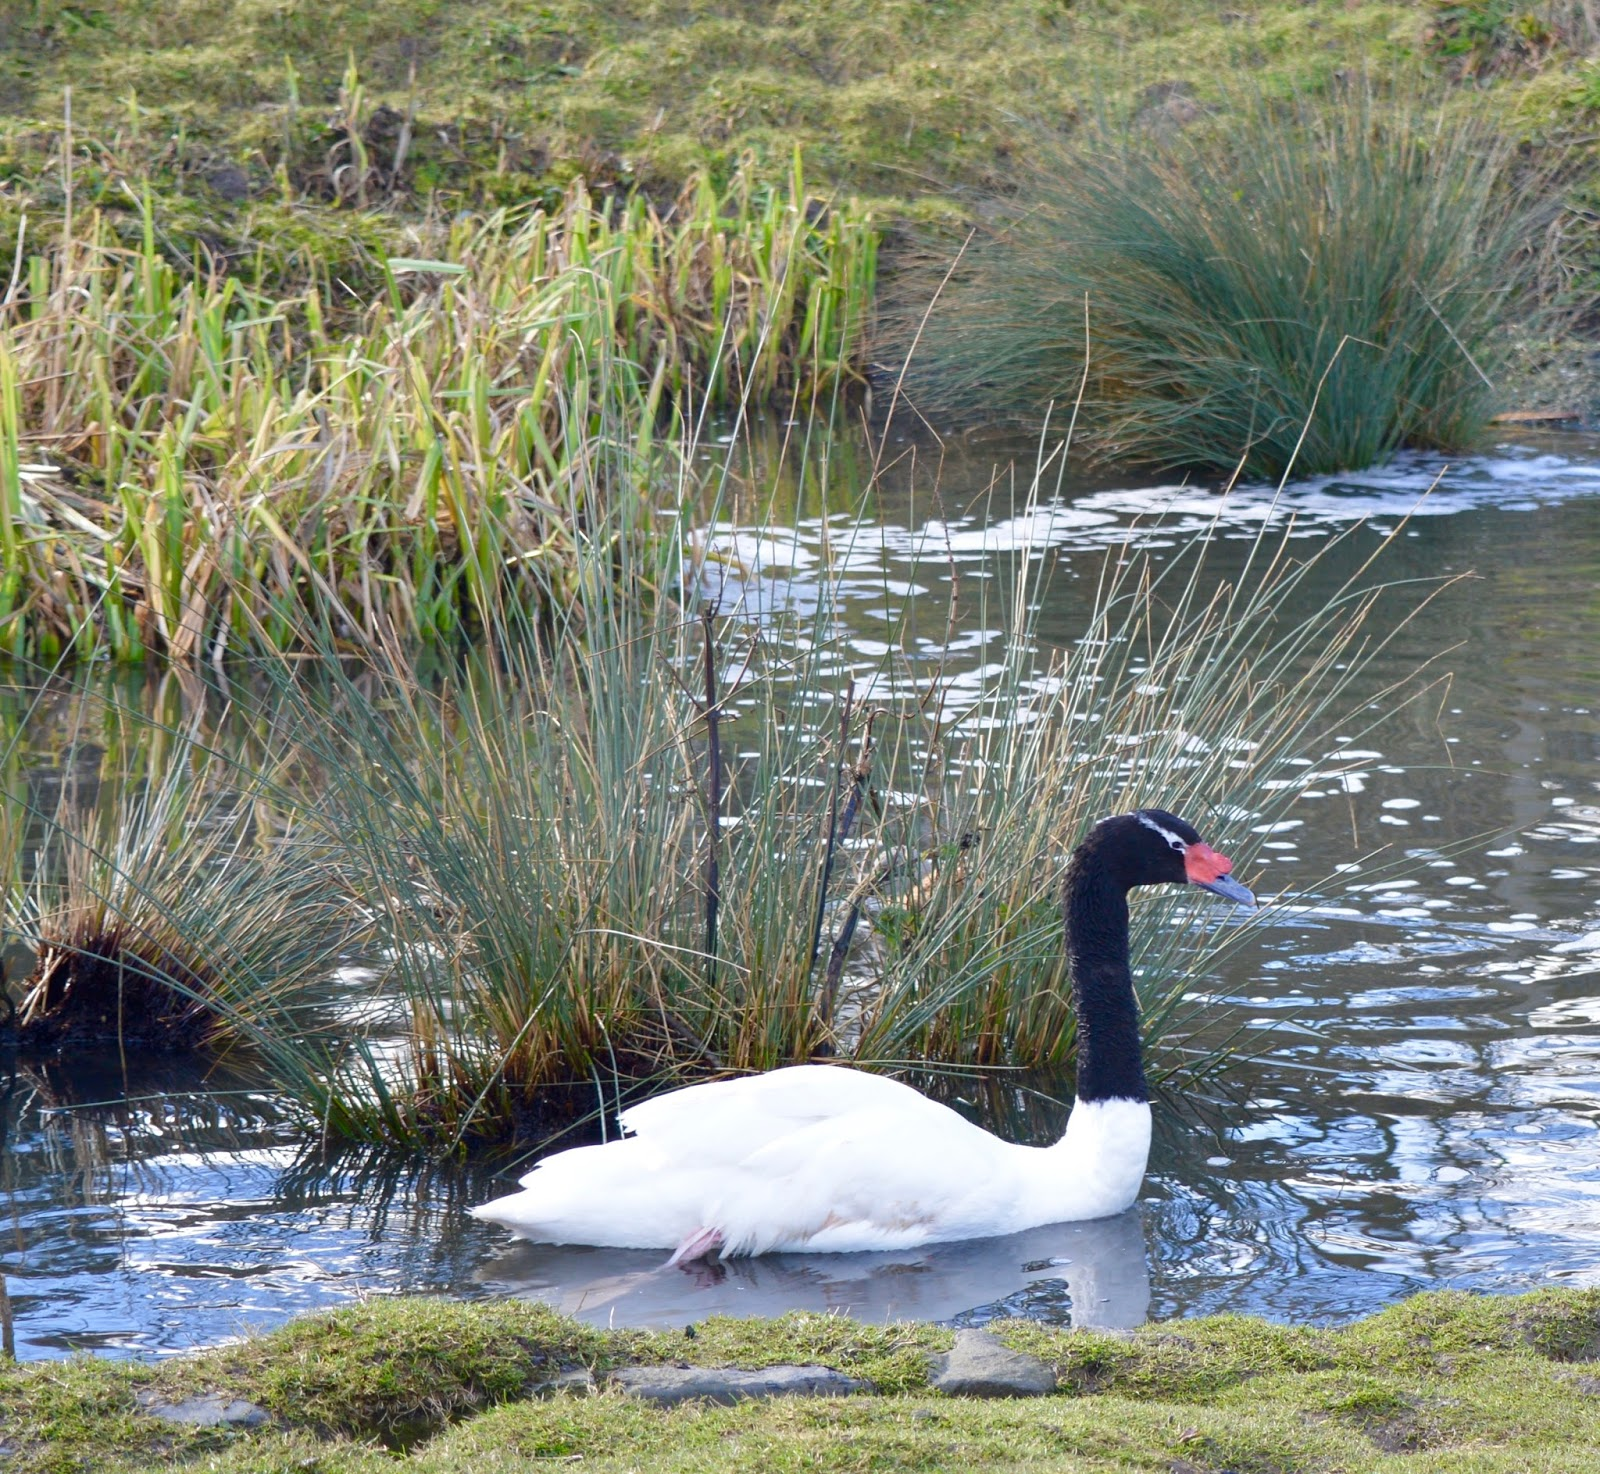 WWT Washington Wetland Centre | An Accessible North East Day Out for the Whole Family - swan